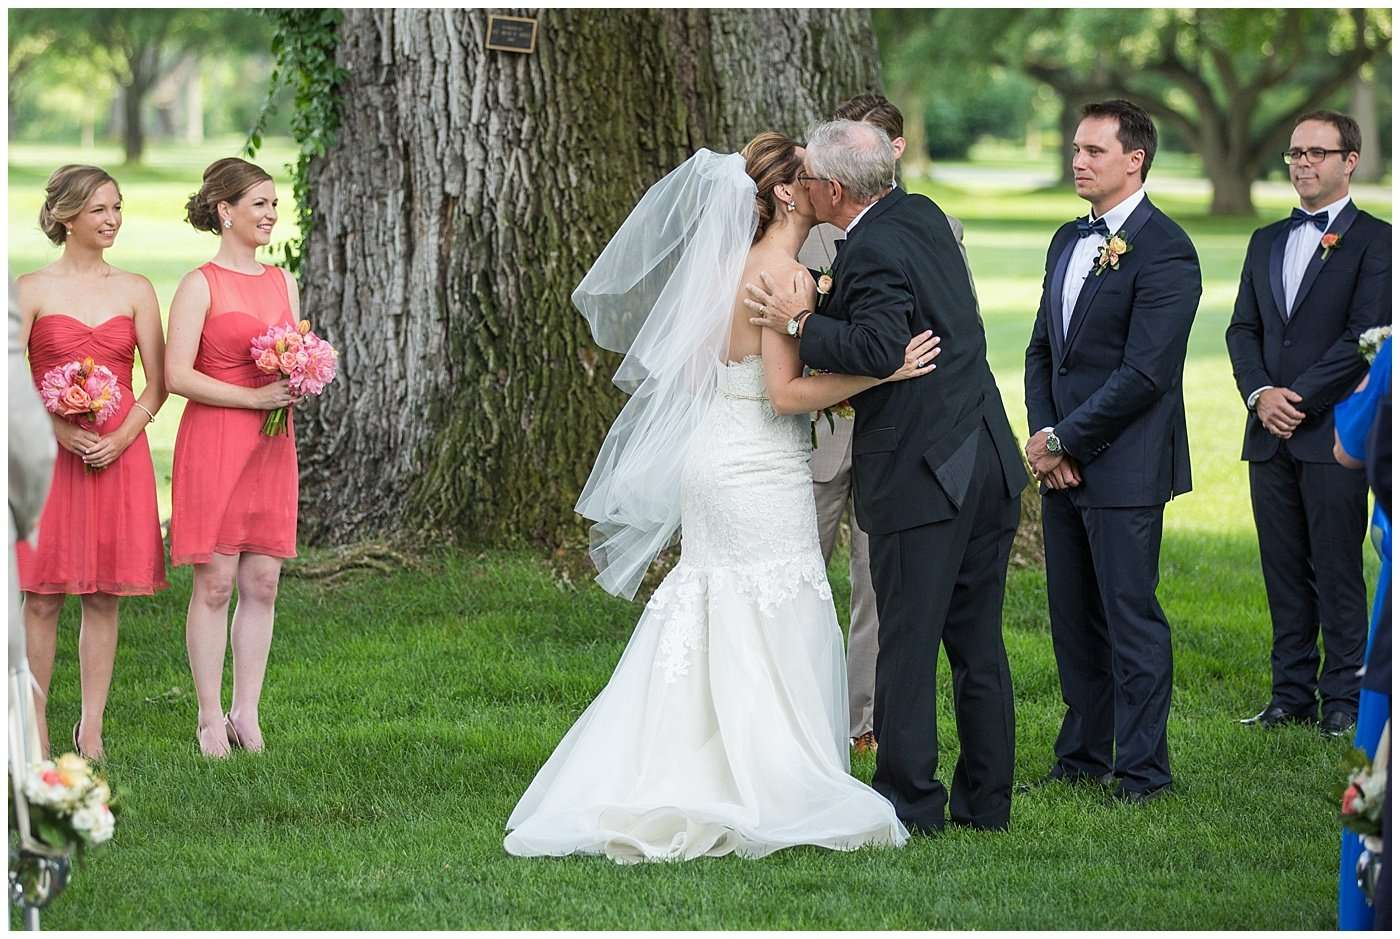 Kim & Lee | A Summer Wedding at Brookside Country Club 110